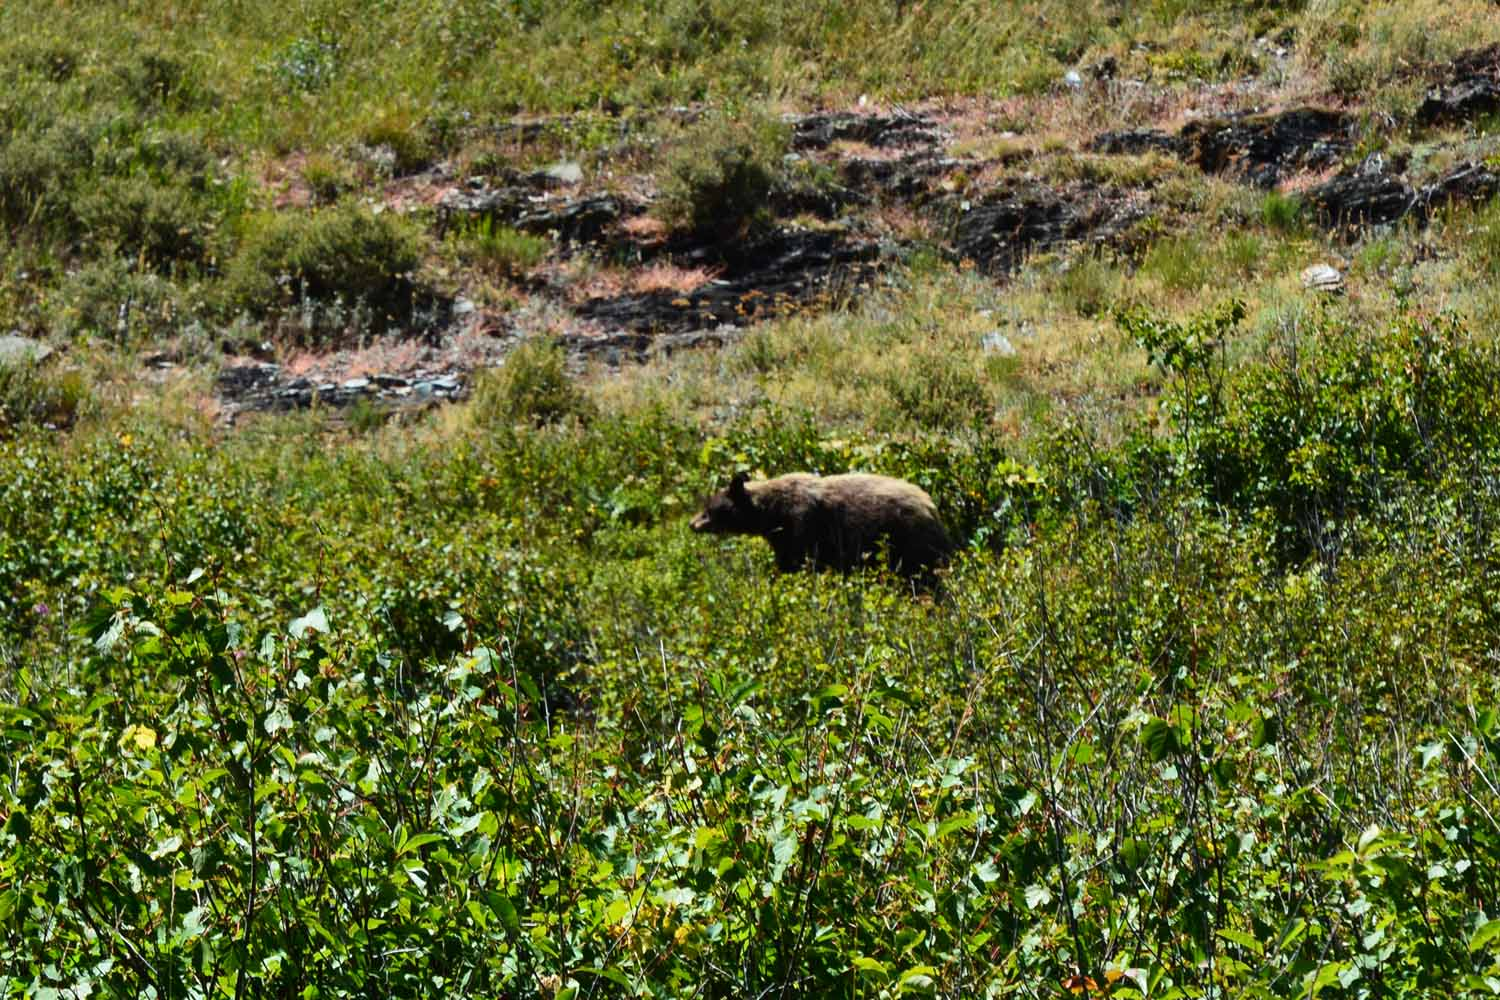 We meet Mr Grizzly eating anything he can find getting ready for winter.  He was about 500 feet from the trail.